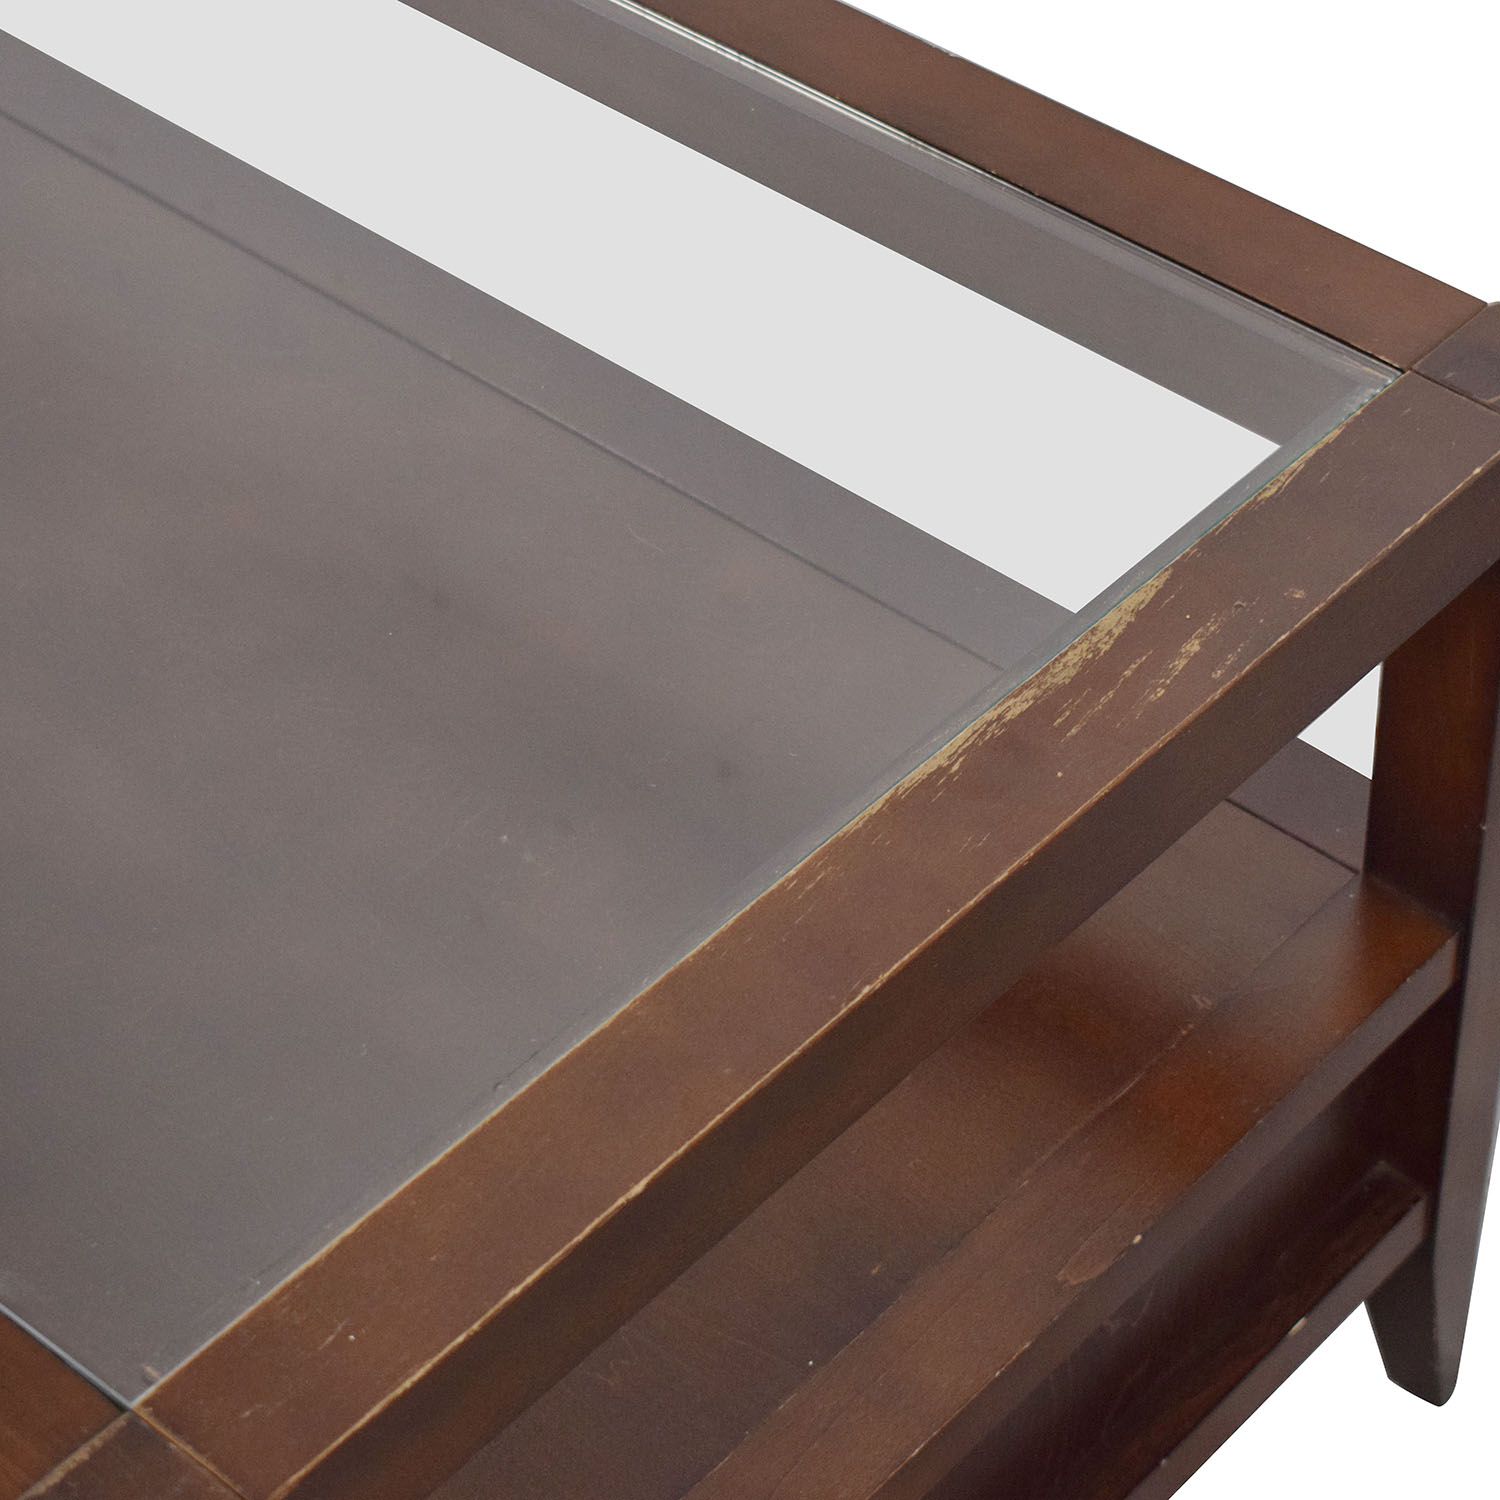 Crate & Barrel Crate & Barrel Two Drawer Coffee Table brown